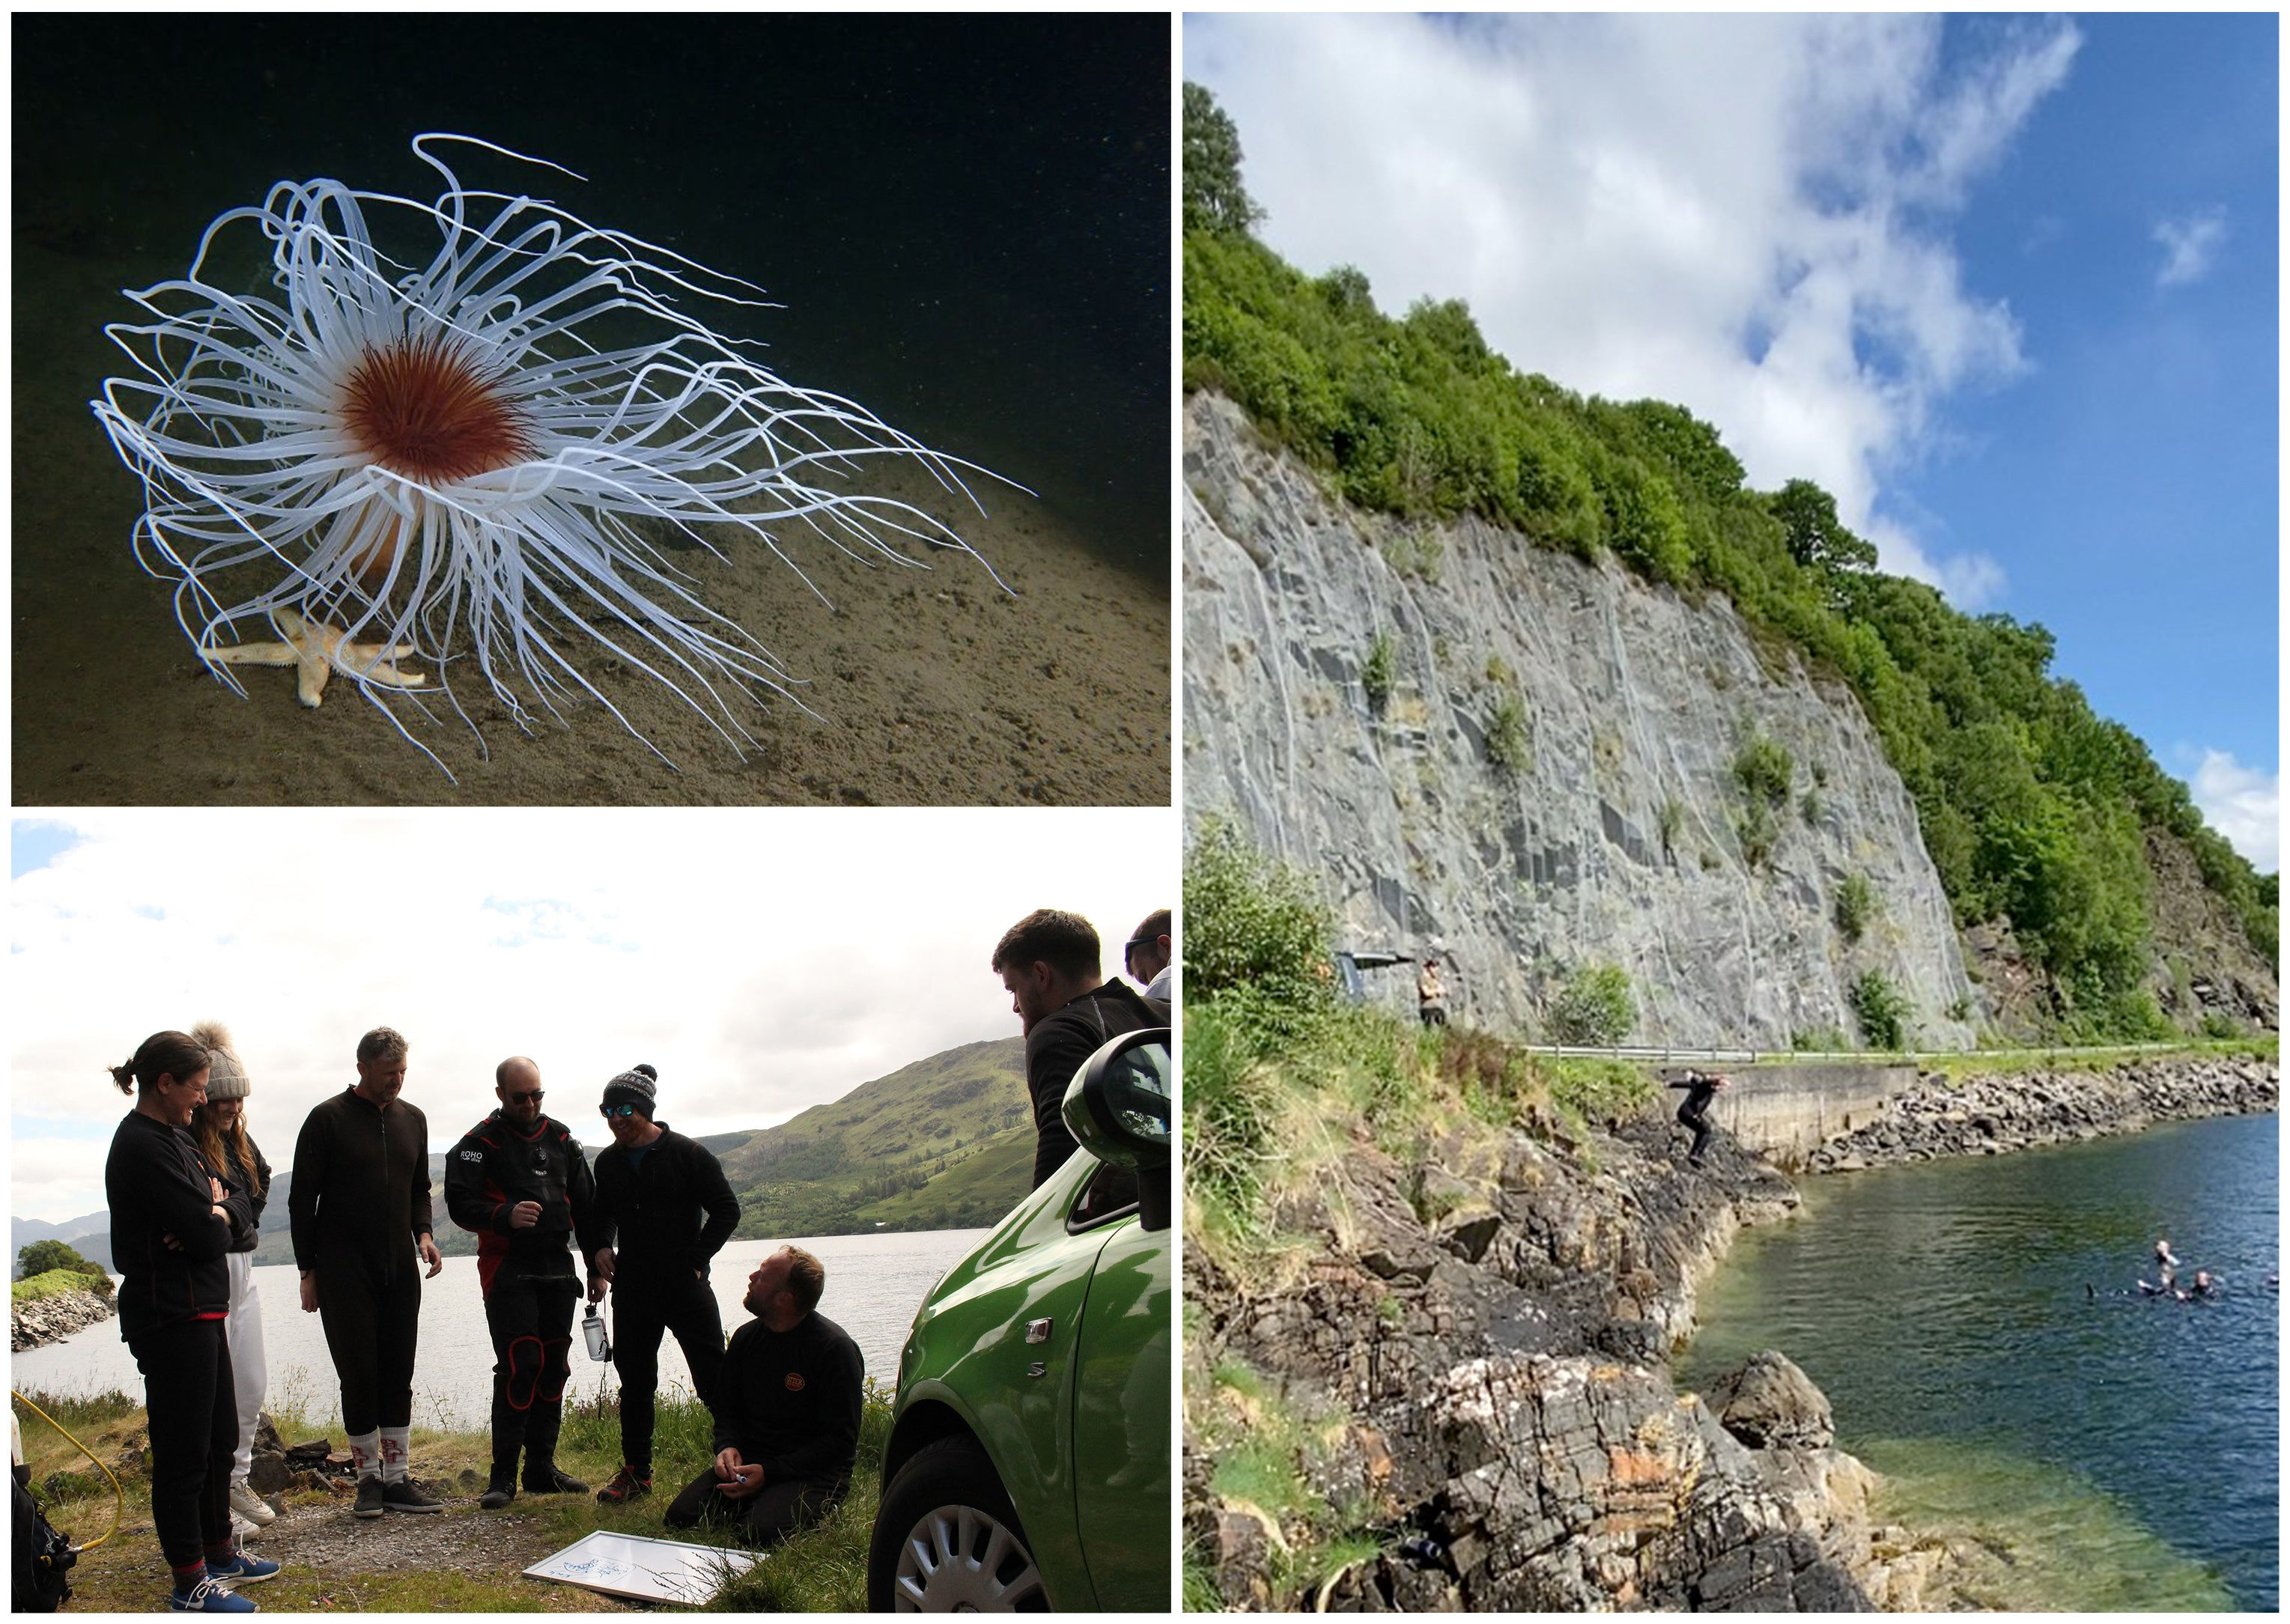 Top left image shows sea creature, bottom left shows divers preparing, right image shows person jumping into the loch